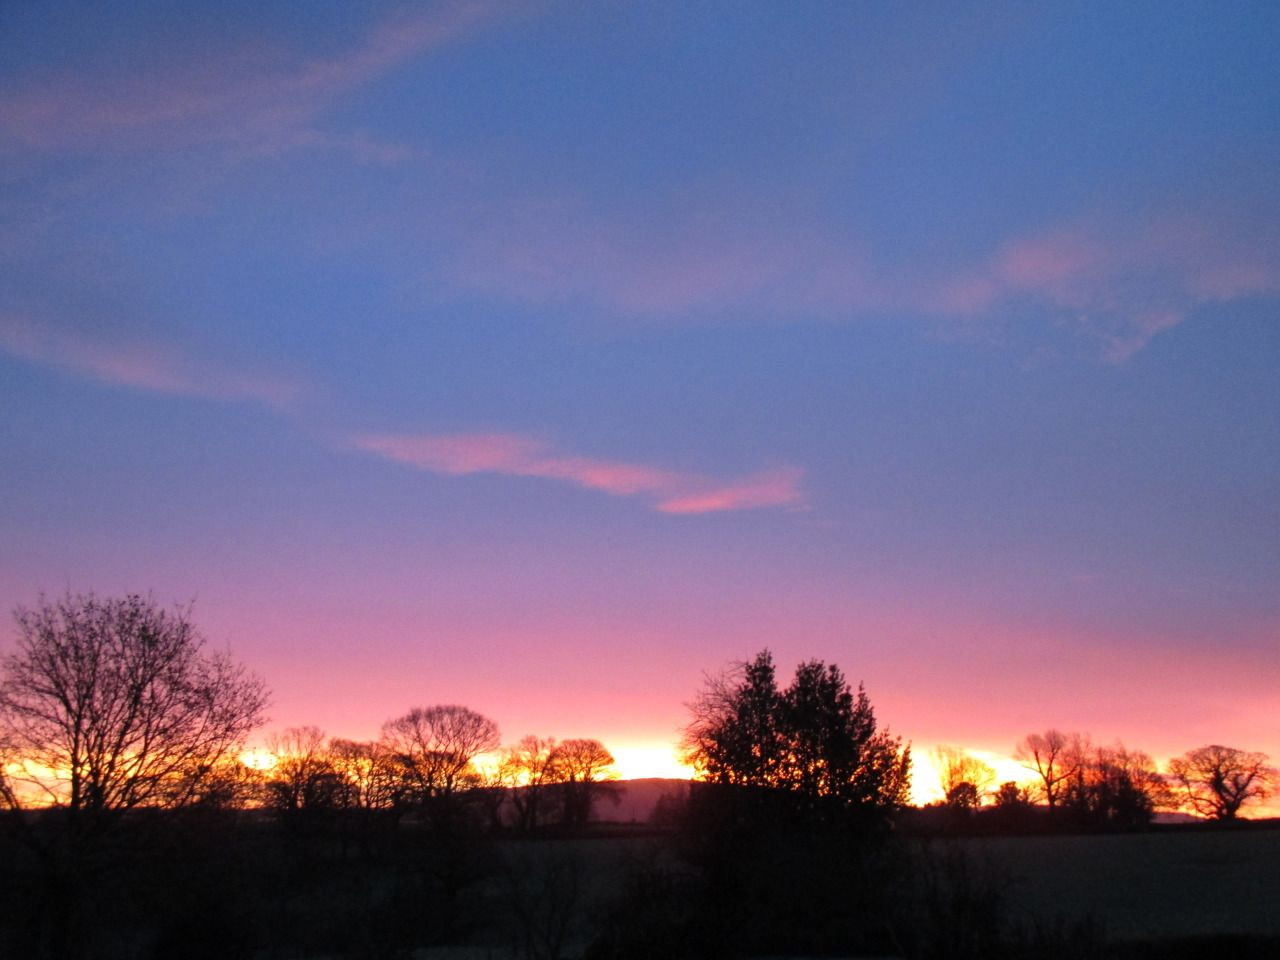 anthony-j-sargeant-tony-blog:  Sunrise in Shropshire by Anthony J Sargeant  Sunrise photographed from our Shropshire home in December 2014. This sensational dawn sky was photographed by Tony from the bedroom window of his home at 8.50 am n the middle of winter.   sensational sunset